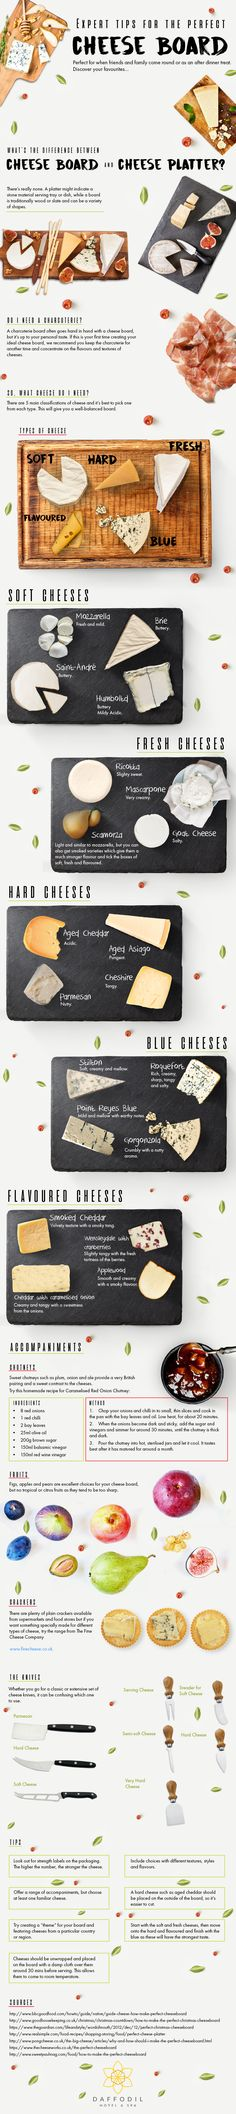 Britain spends almost £3 million a year on cheese. That's a lot of cheese. So, it's no wonder that so many of us enjoy a cheese board before or instead of dessert. But what's the difference between a cheese board and a cheese platter? Do you need a charcuterie? How should it be served and what with? Crackers? Olives? Bread? So many questions and not enough time to google all the answers? Don't worry. If you've ever wondered how to create the perfect cheese board, you're in luck. We've got a…